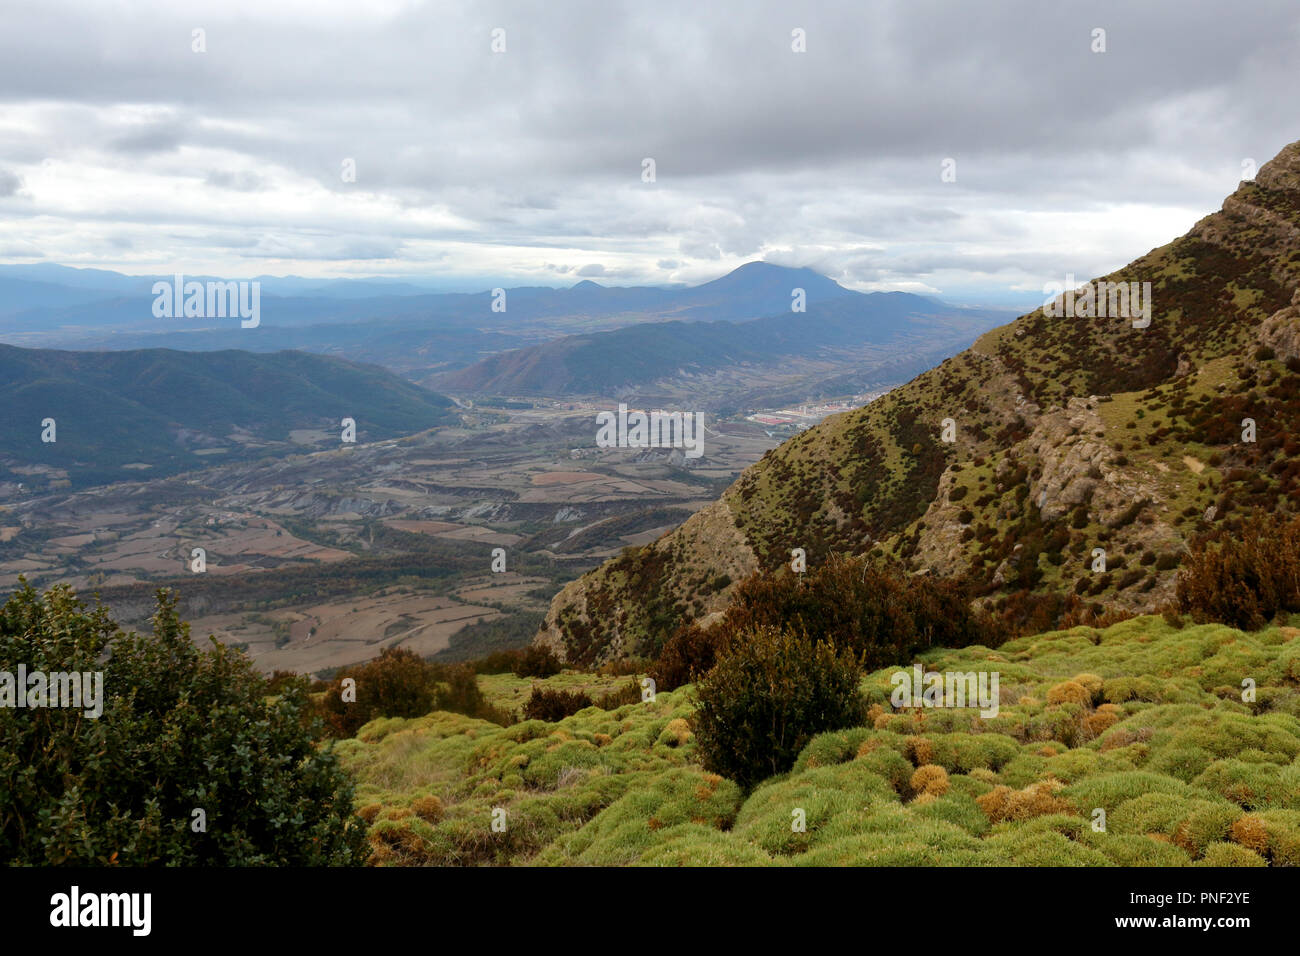 Blue cloudy sky and typical mountains and hills covered with forest met in autumn while hiking from Yebra de Basa town to Santa Orosia churc, Spain Stock Photo